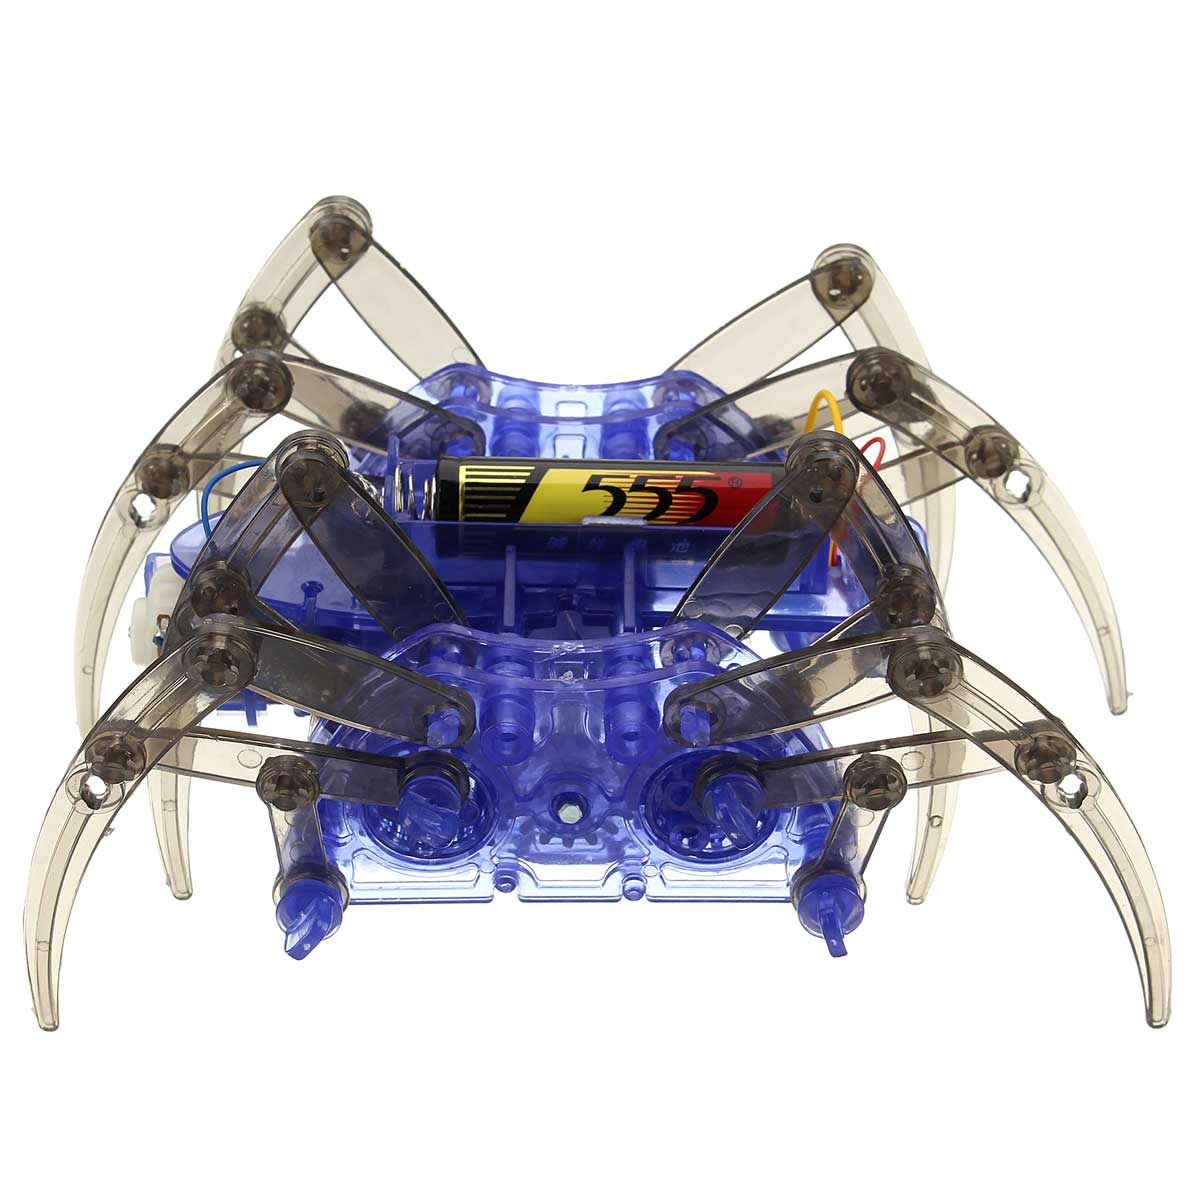 High Quality Diy Emble Intelligent Electric Spider Robot Toy Educational Kit Hot Ing Embling Building